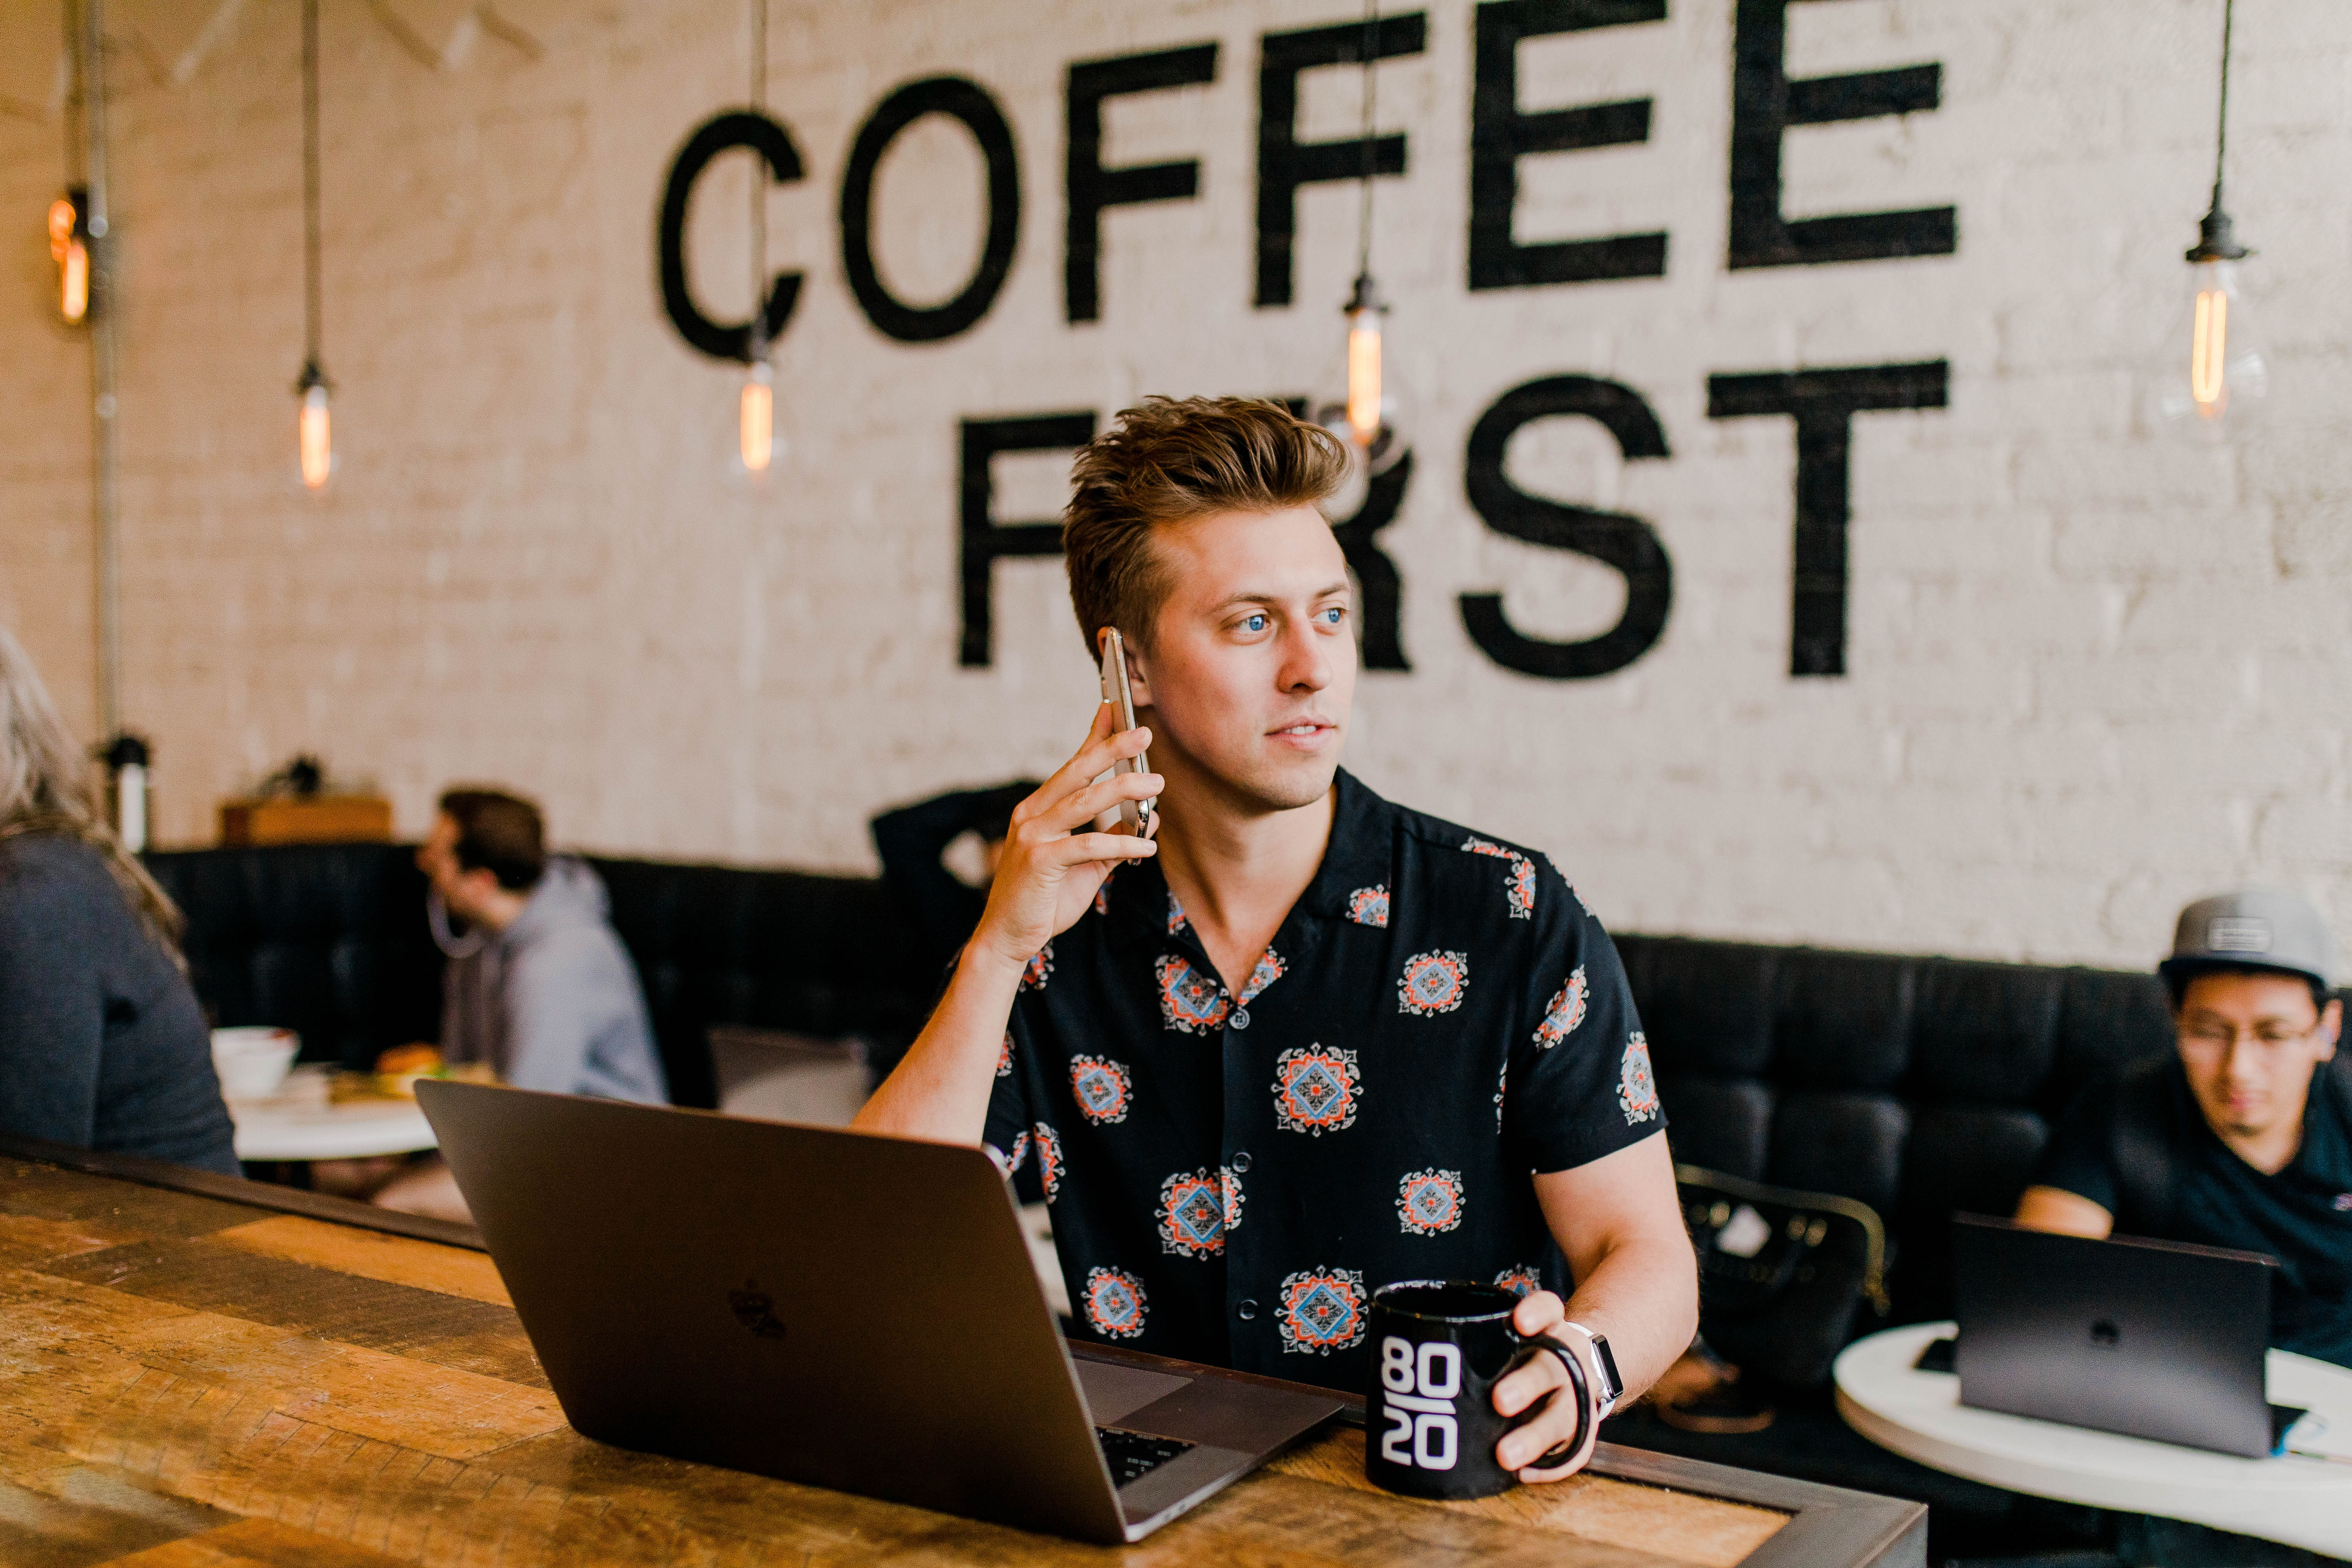 Coffee is the fuel that entrepreneurs, marketers, and founders of startups burn to run their business at full efficiency. Better Buzz in northern San Diego is the perfect pit stop for a hustler to recharge. How many great ideas were struck over an espresso? One could only imagine…